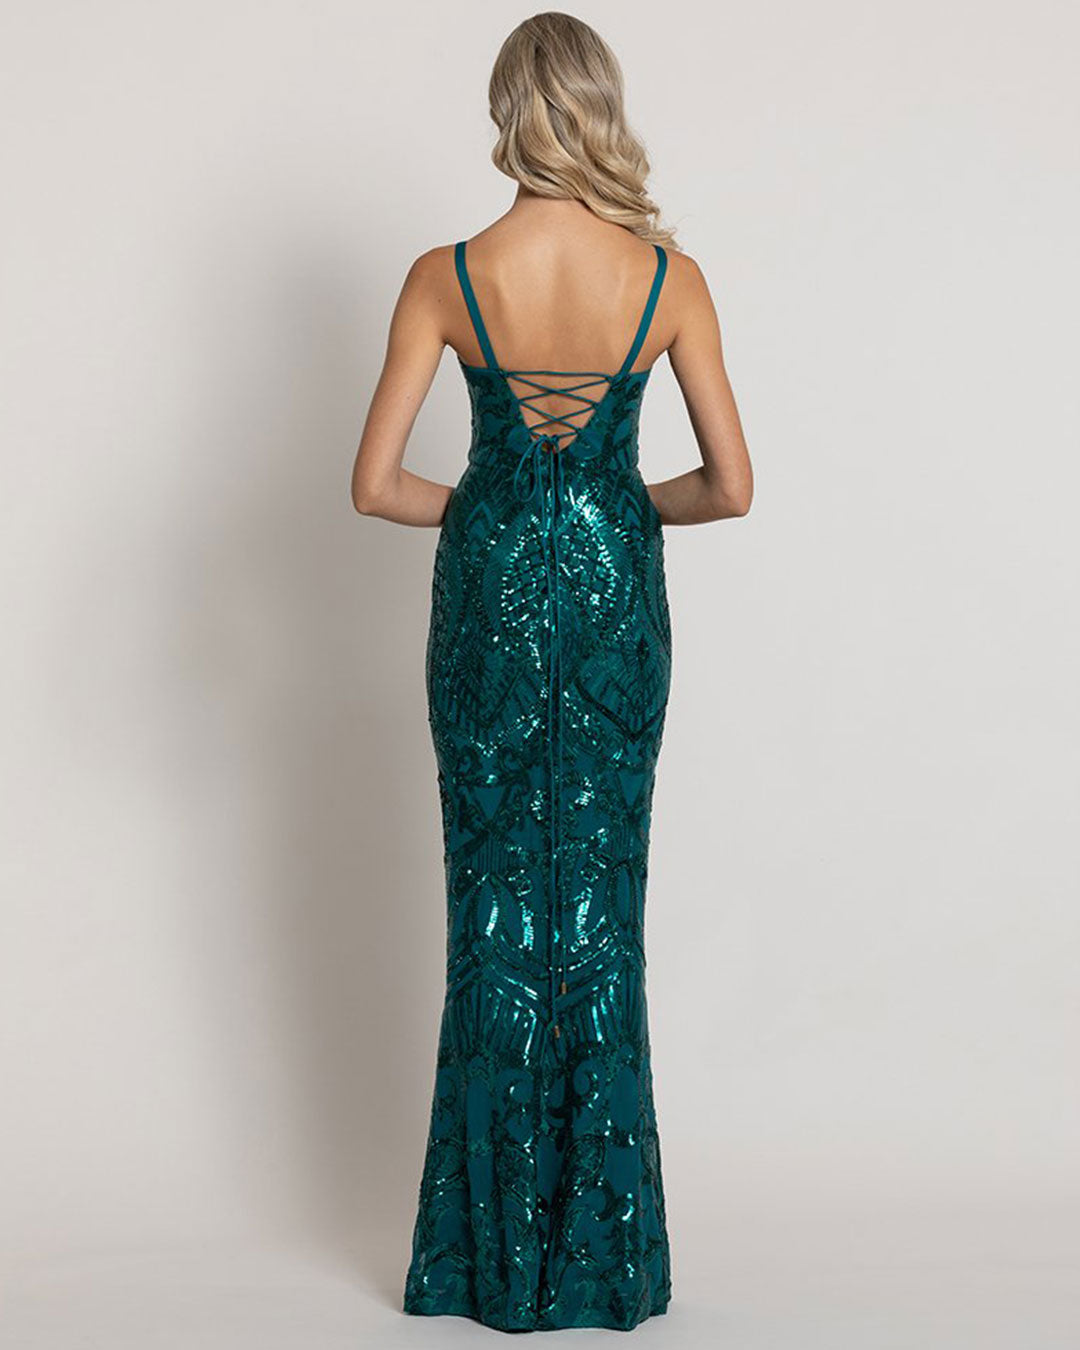 Alyssa Pattern Sequin Gown - Emerald Green